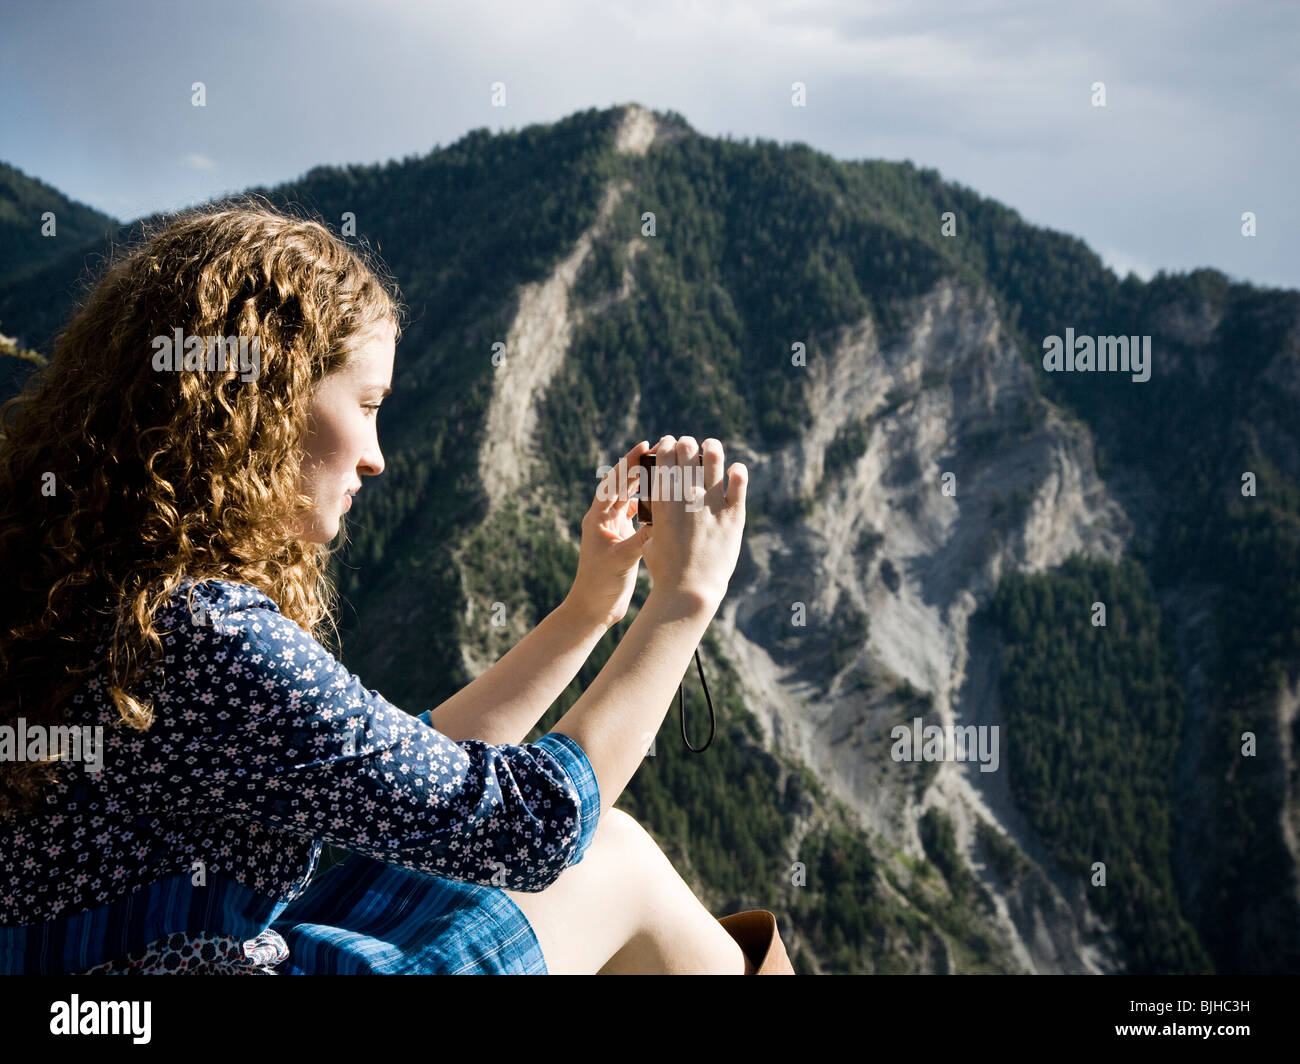 woman in a floral print dress on a mountain top - Stock Image